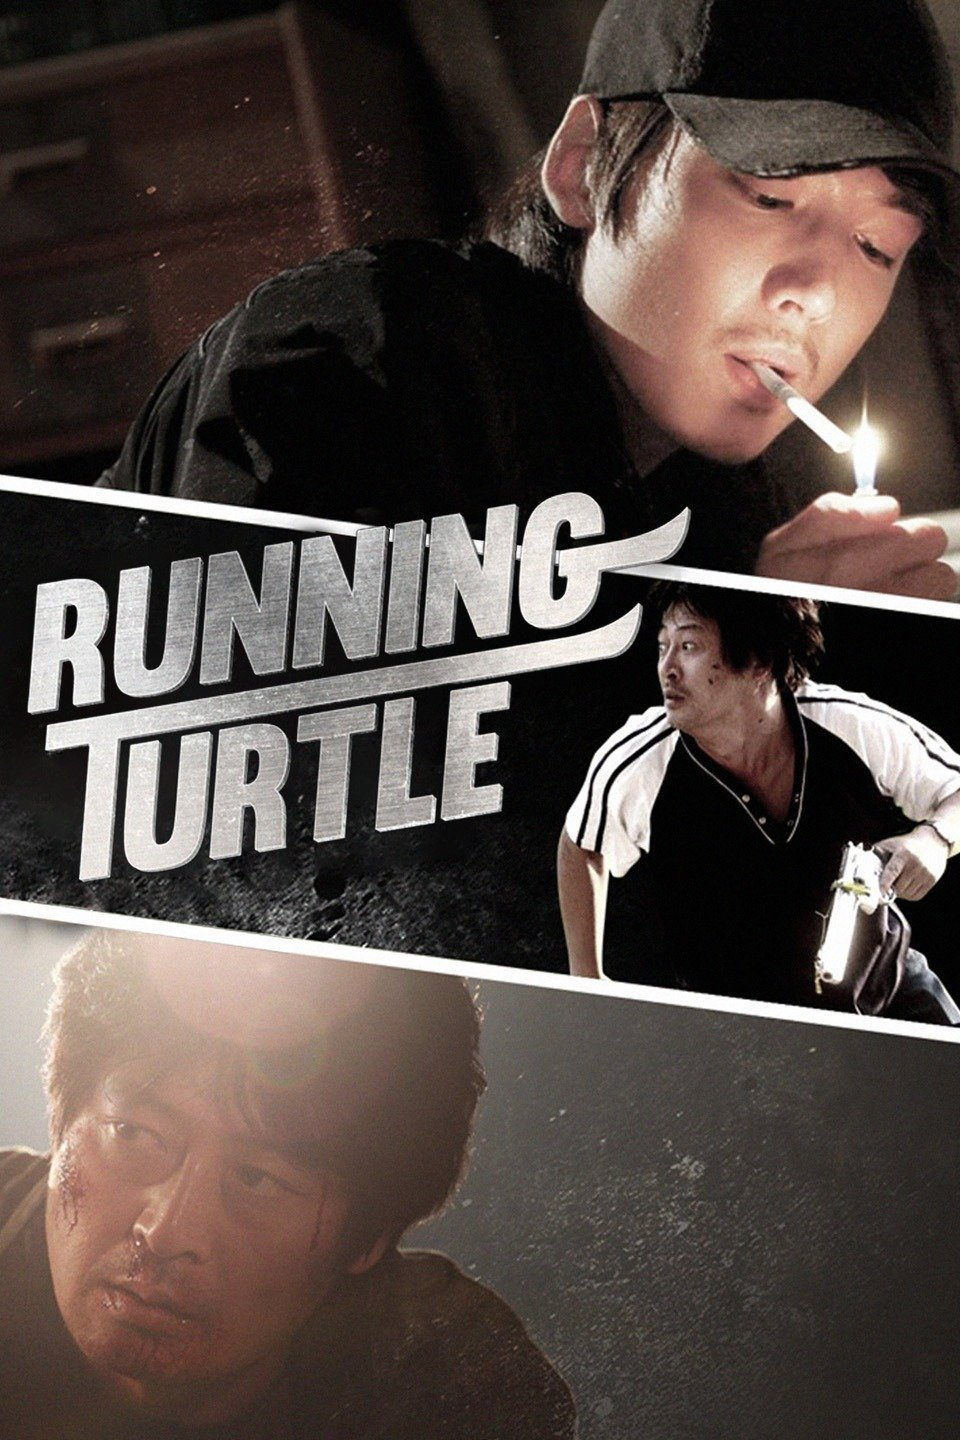 Running Turtle (Geobugi dallinda)